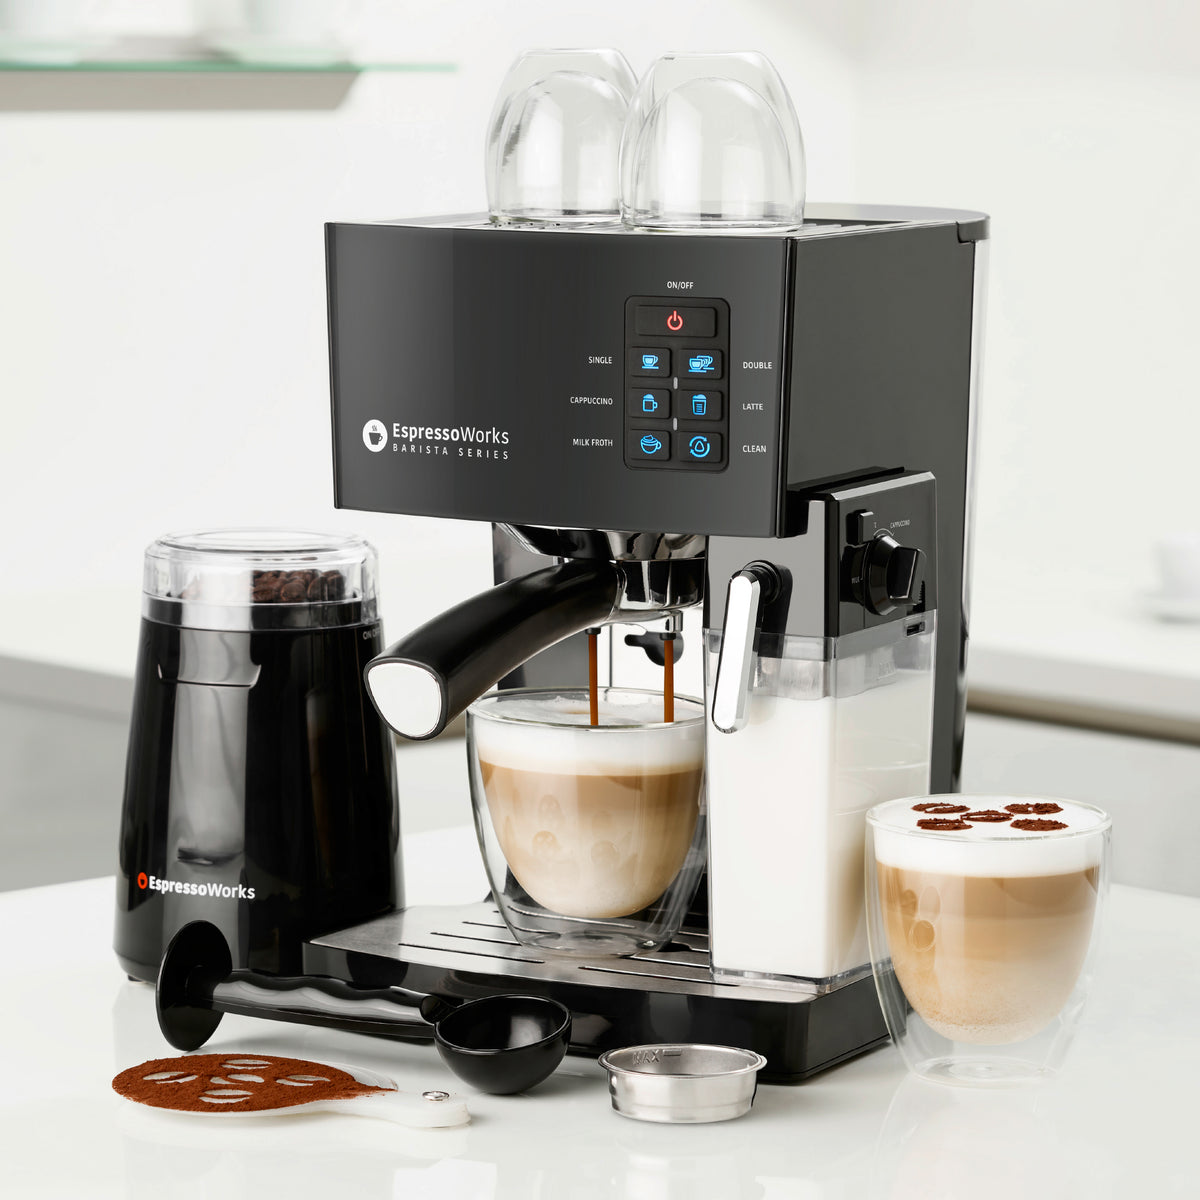 10-Piece Black Espresso & Cappuccino Maker Set